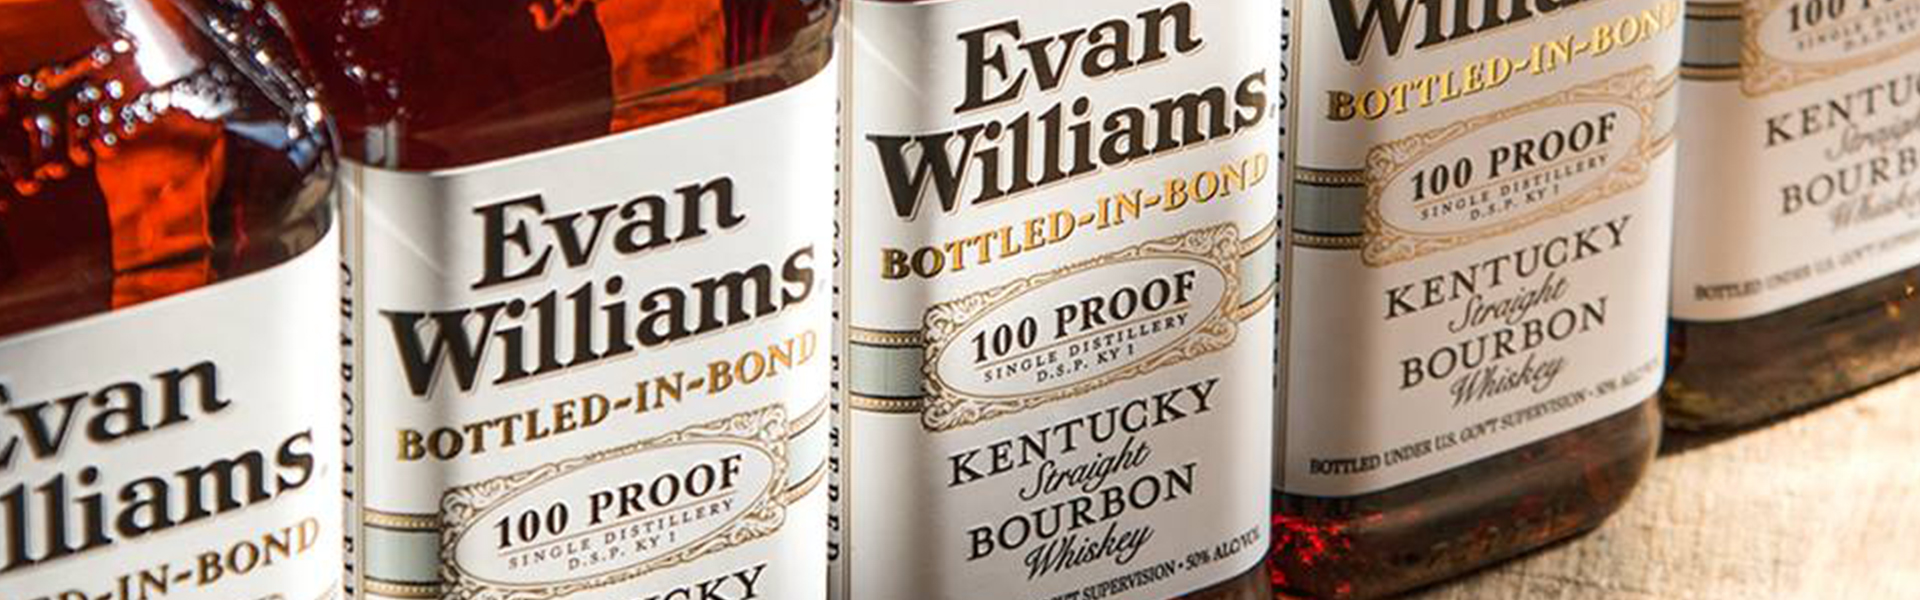 Evan Williams hyllade Bottled-in-Bond Bourbon Whiskey – nu i fast sortiment på Systembolaget.